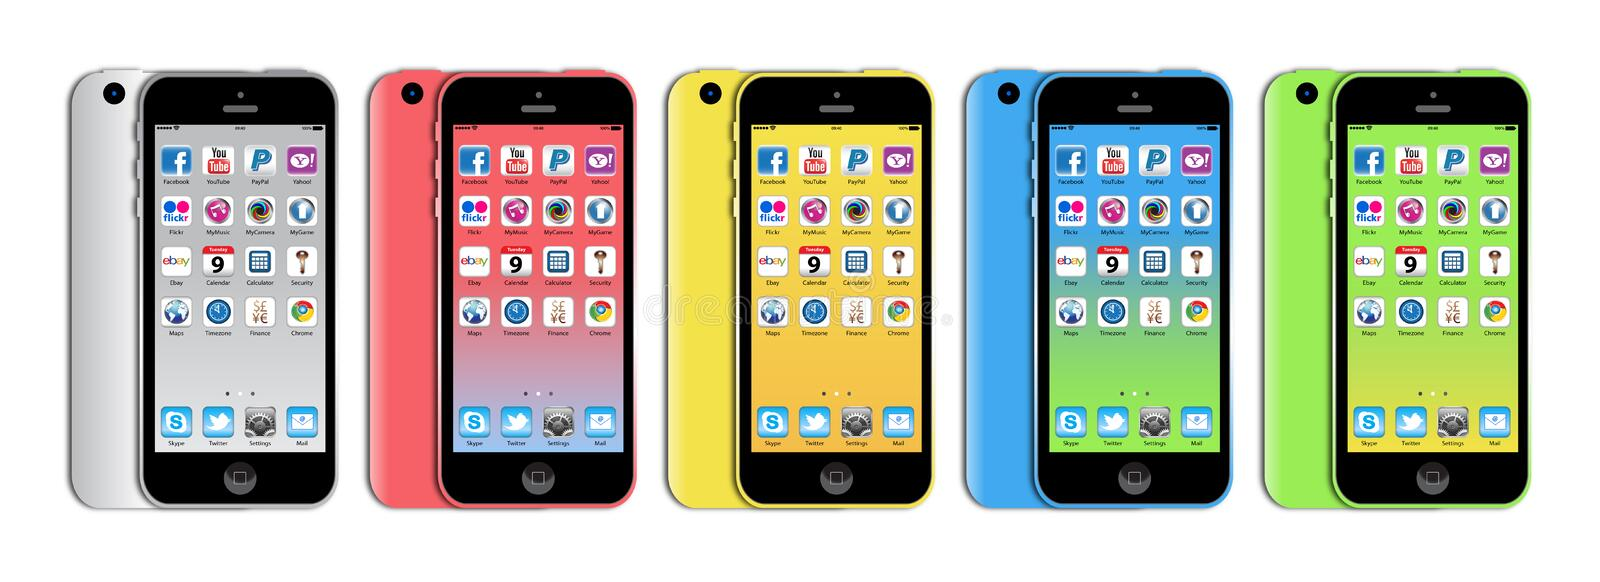 New Apple iphone 5c. The new Apple iPhone 5c launched in September 2013 has a A6 chip, 8MP iSight camera, a 4-inch retina display, plus ultra‑fast